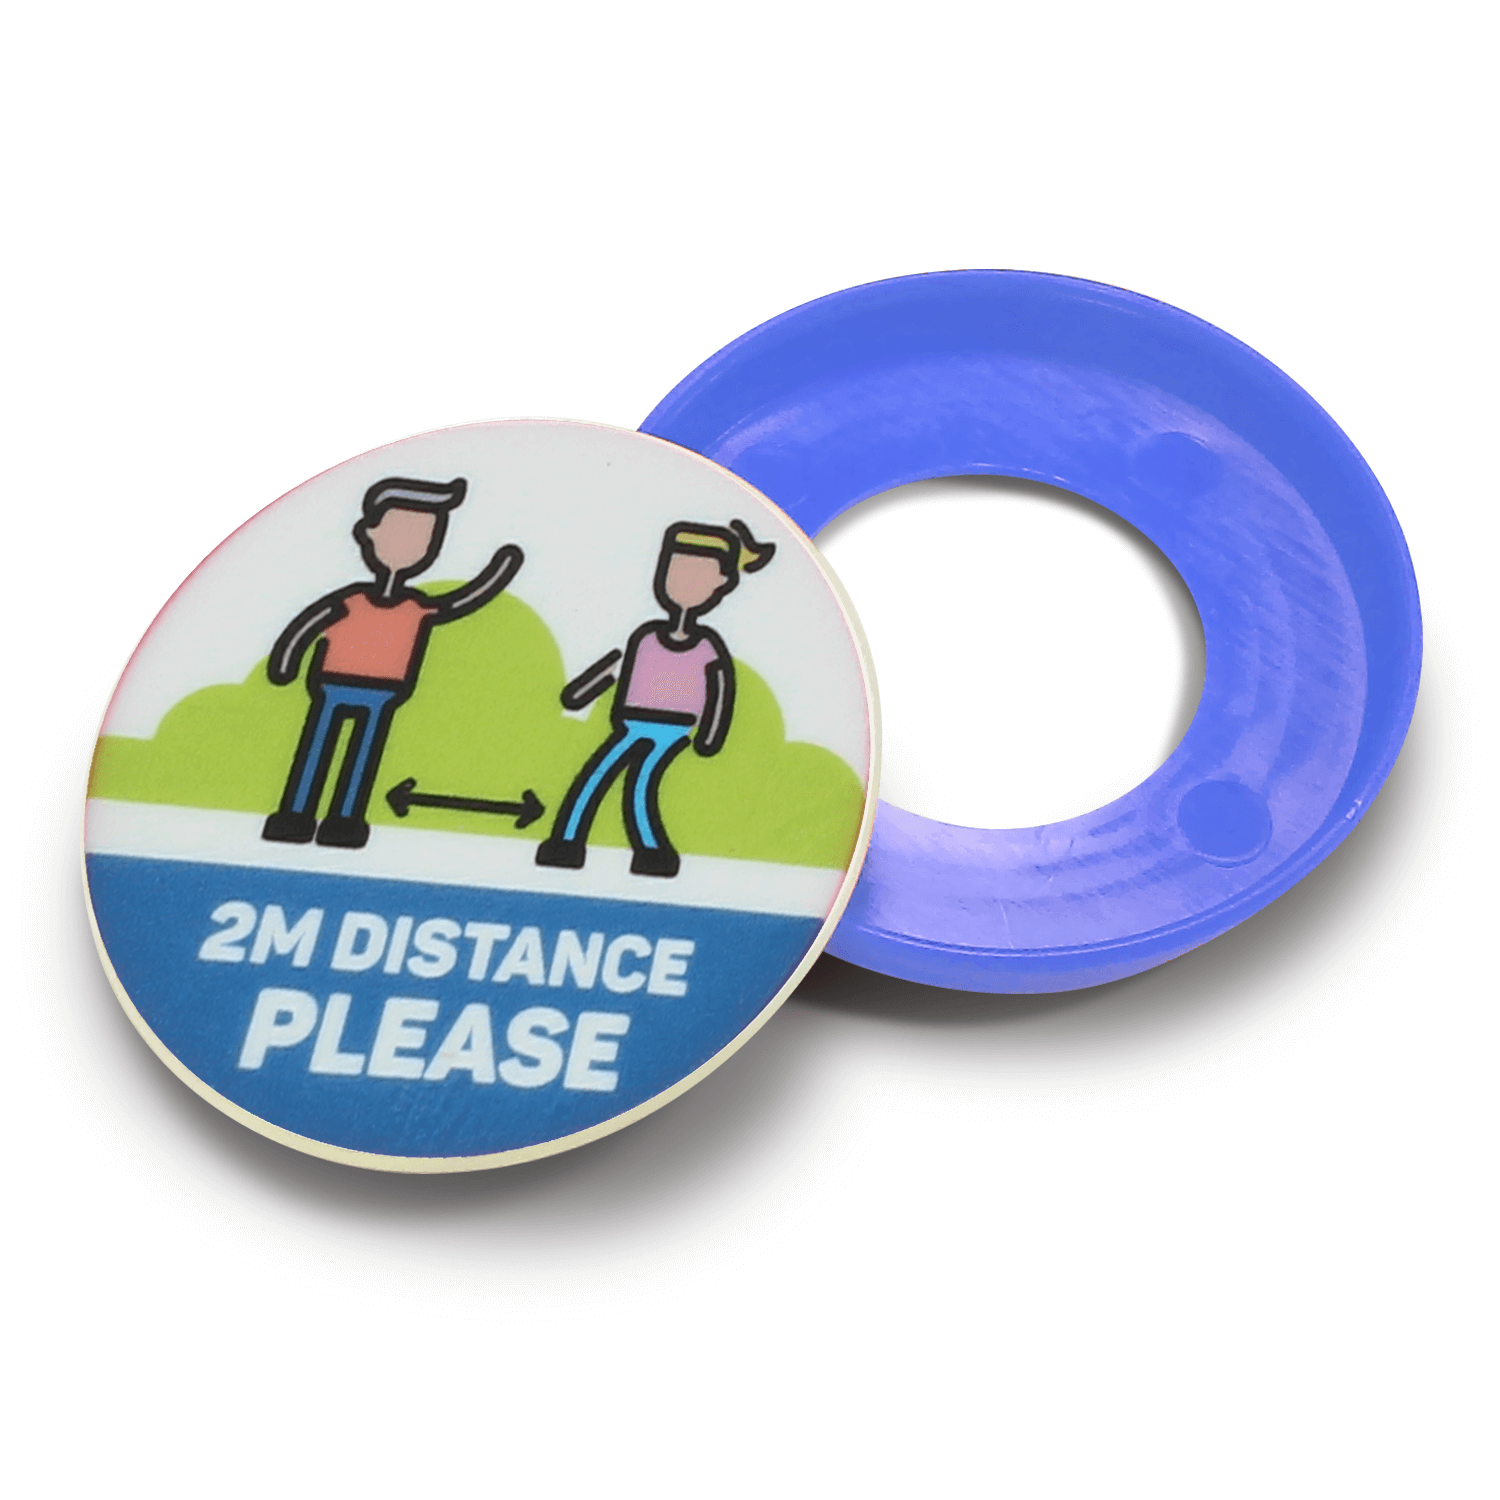 100% Recycled Plastic Kids Social Distancing Safety Pop Button Badges - 45mm